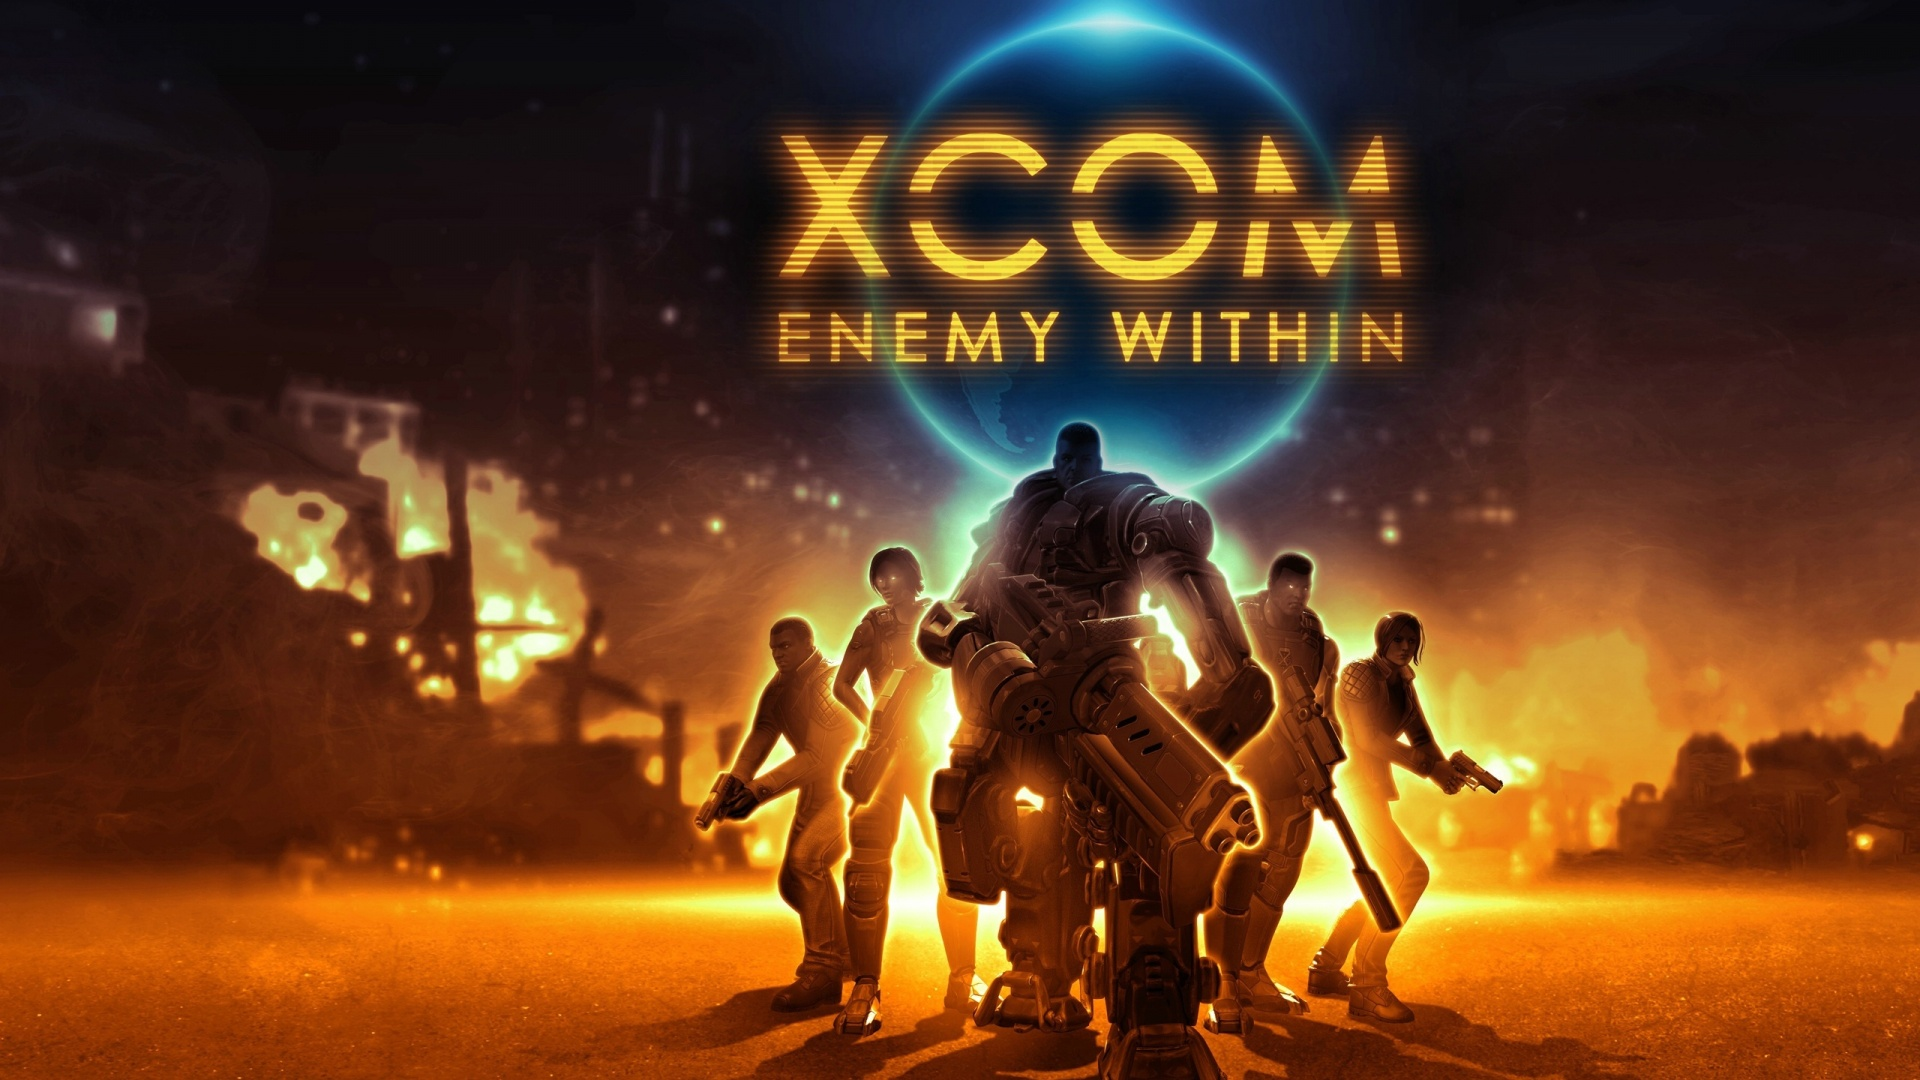 Xcom enemy unknown трейнер